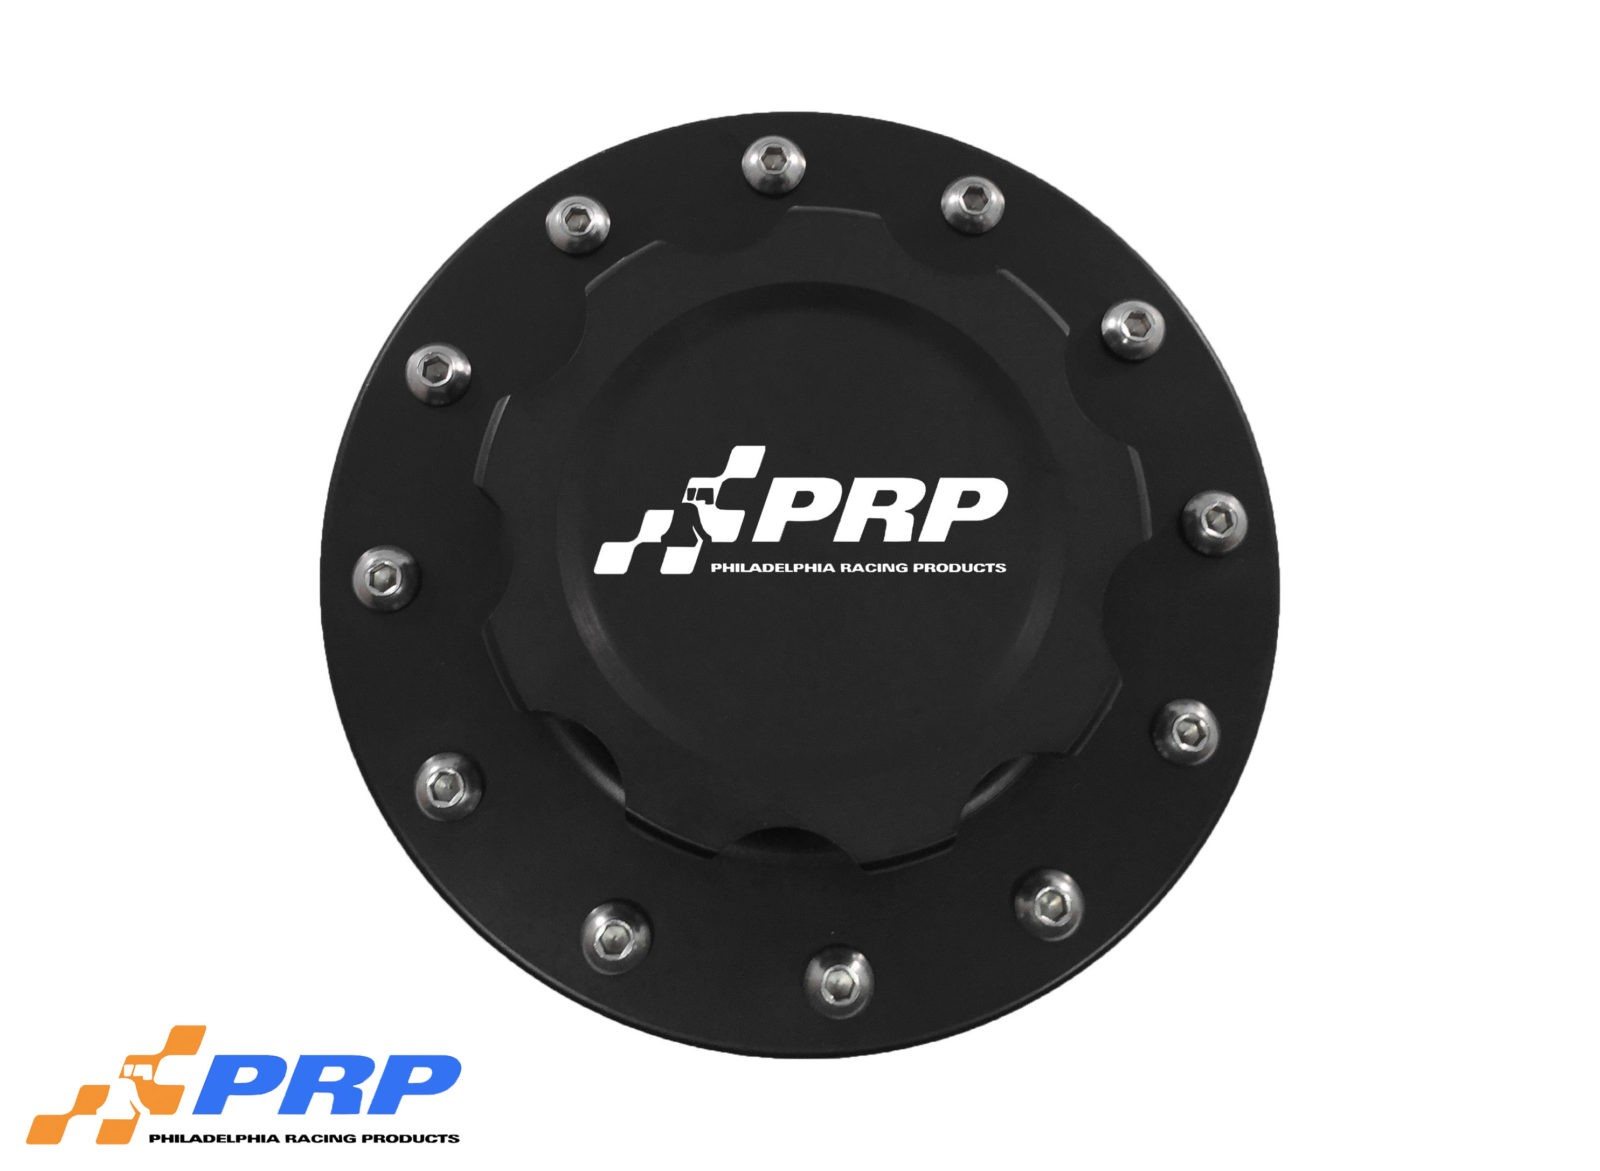 Black anodized 12 Bolt Fuel Cell Cap made by PRP Racing Products